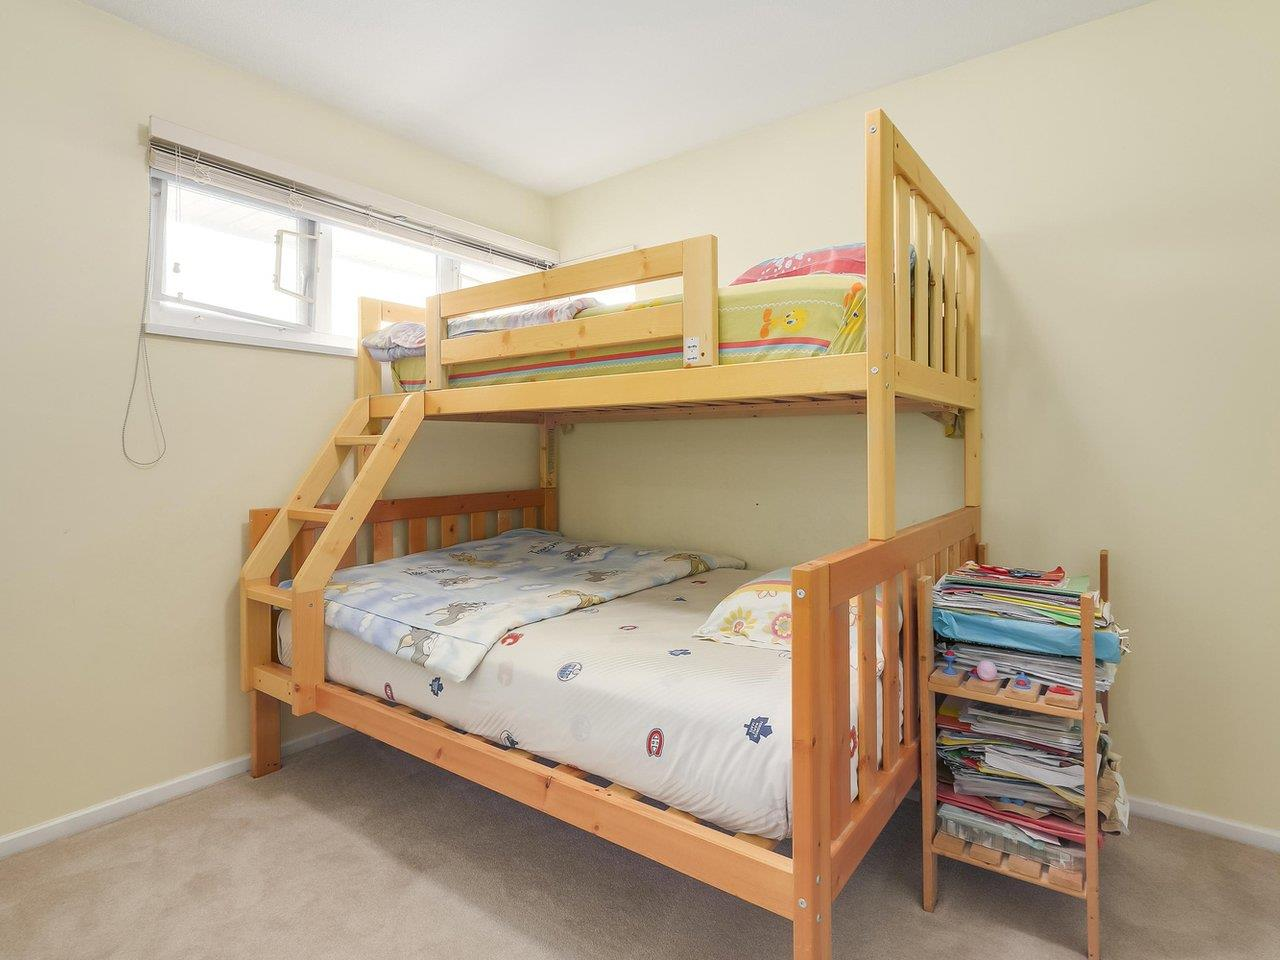 Condo Apartment at 405 2965 HORLEY STREET, Unit 405, Vancouver East, British Columbia. Image 13